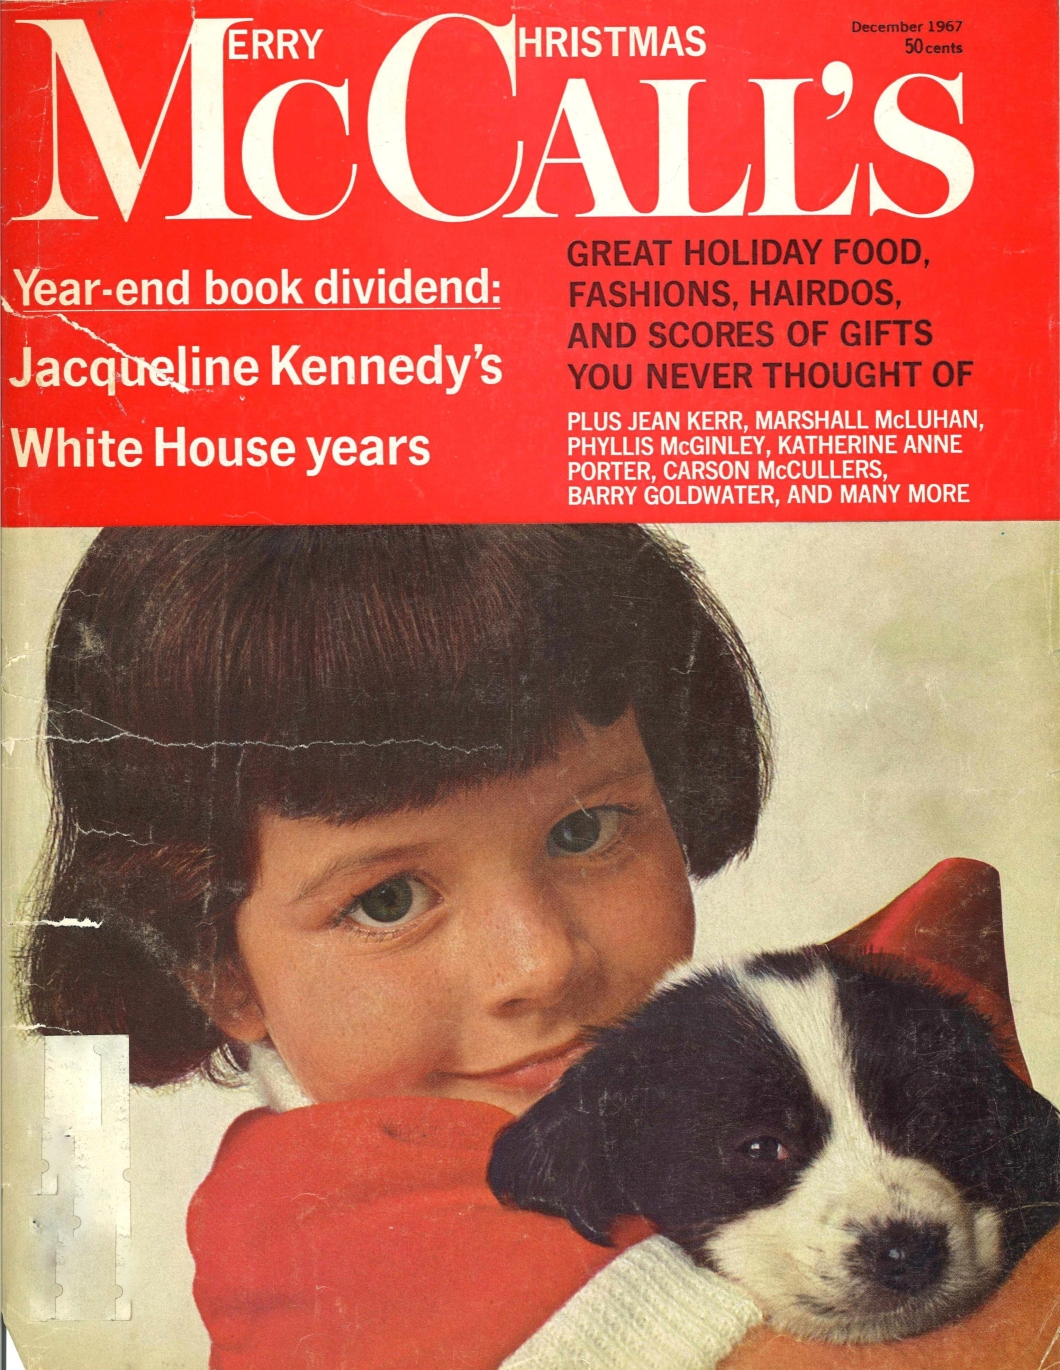 McCall's Magazine December 1967 Issue Cover